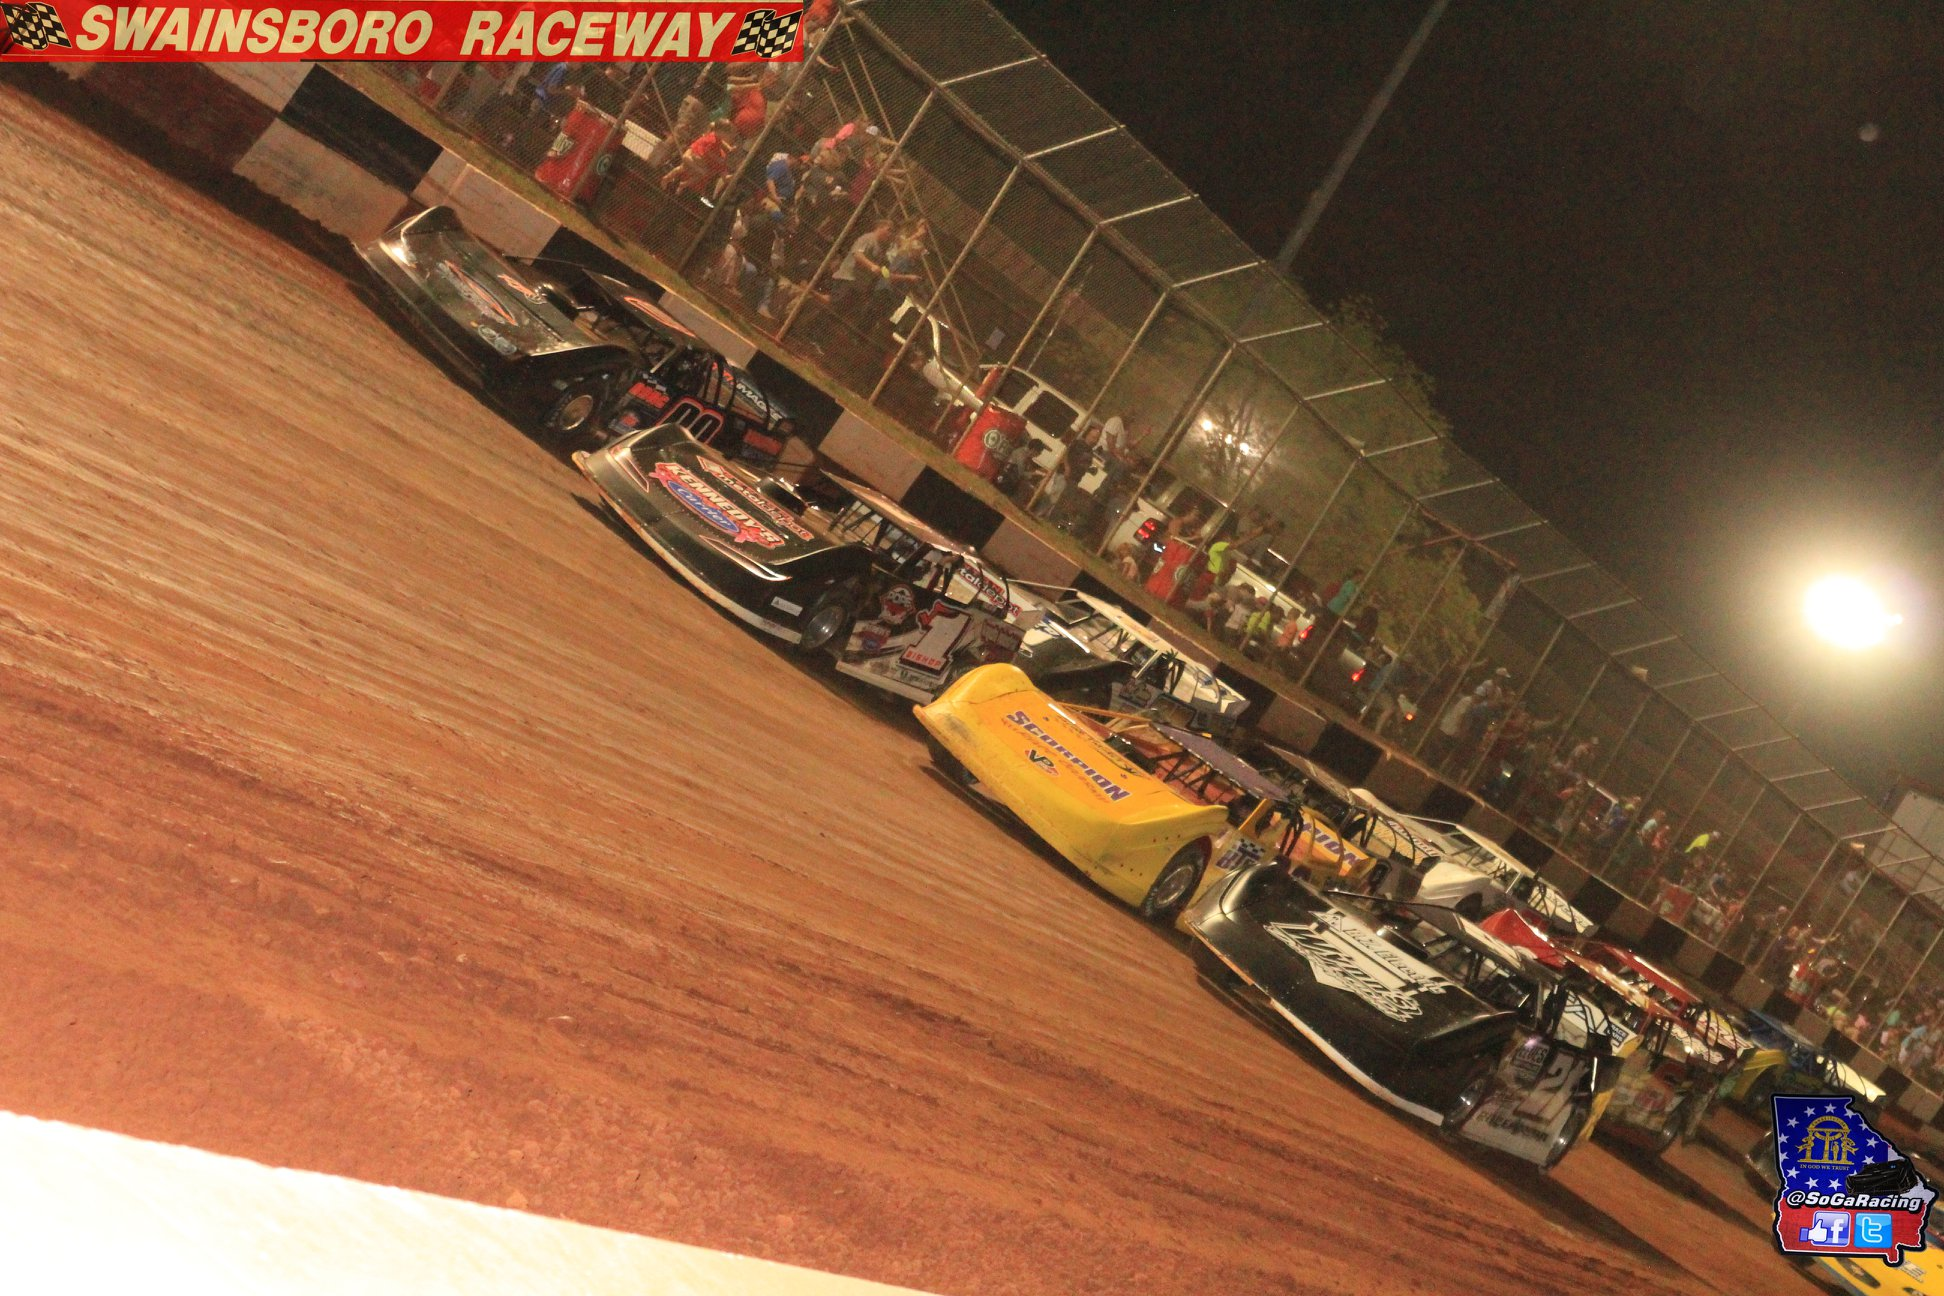 LATE MODEL WEEKEND DOUBLE HEADER PLUS UNITED SPRINT CAR SERIES TAKES OVER THE 'BORO!